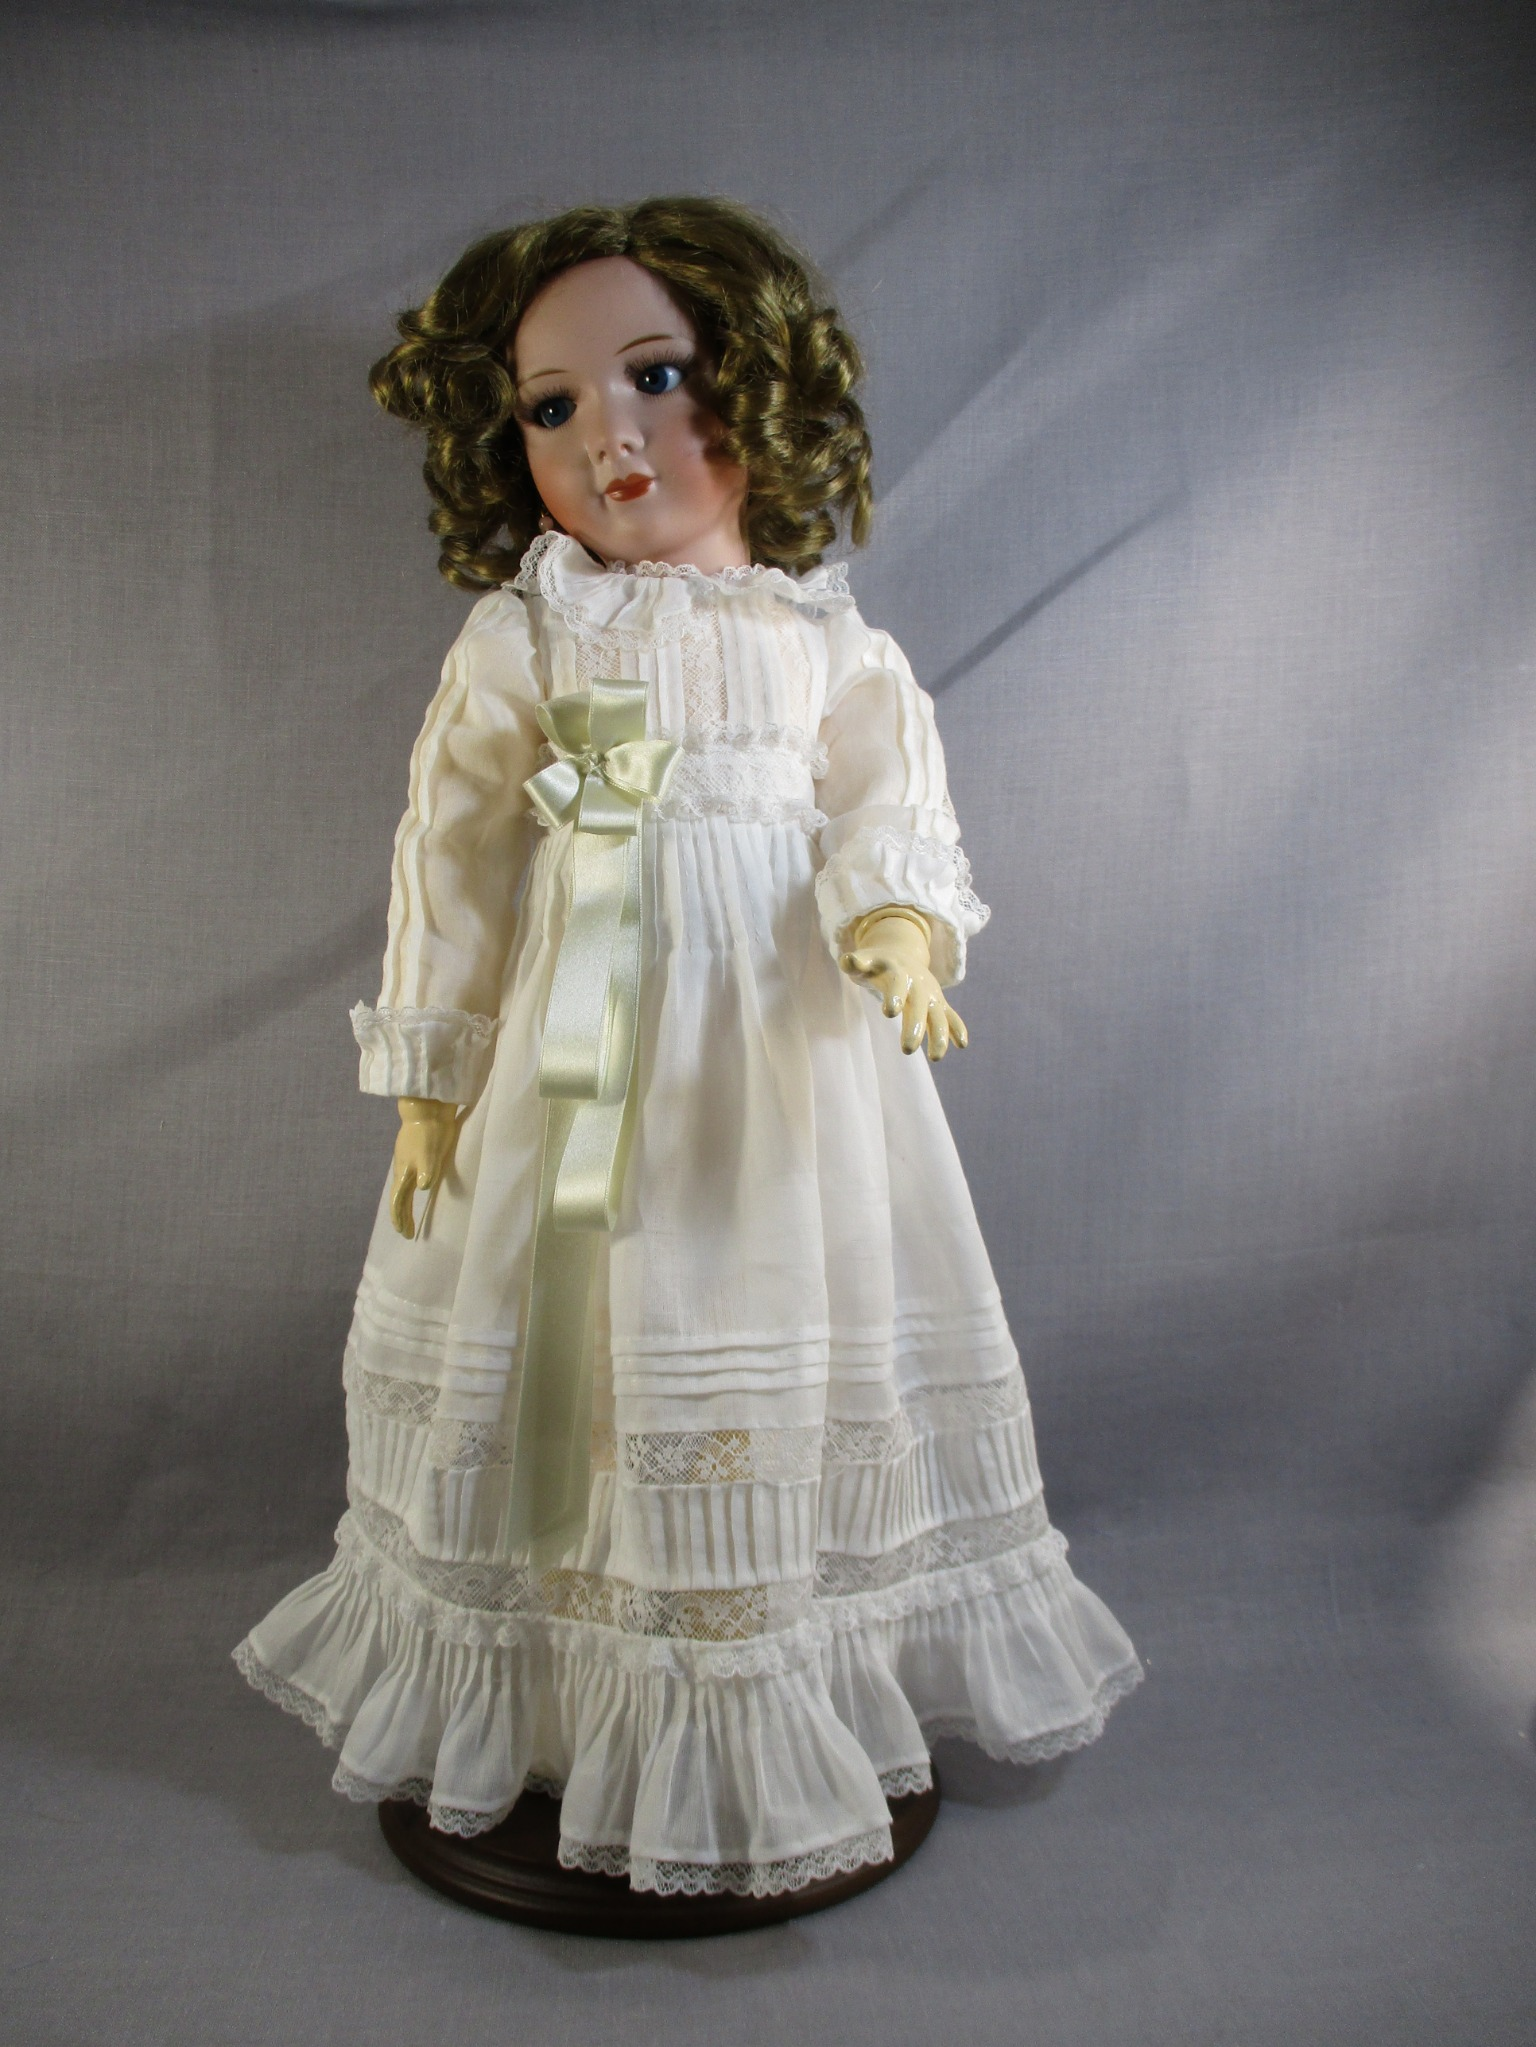 Princess Nightgown and Robe